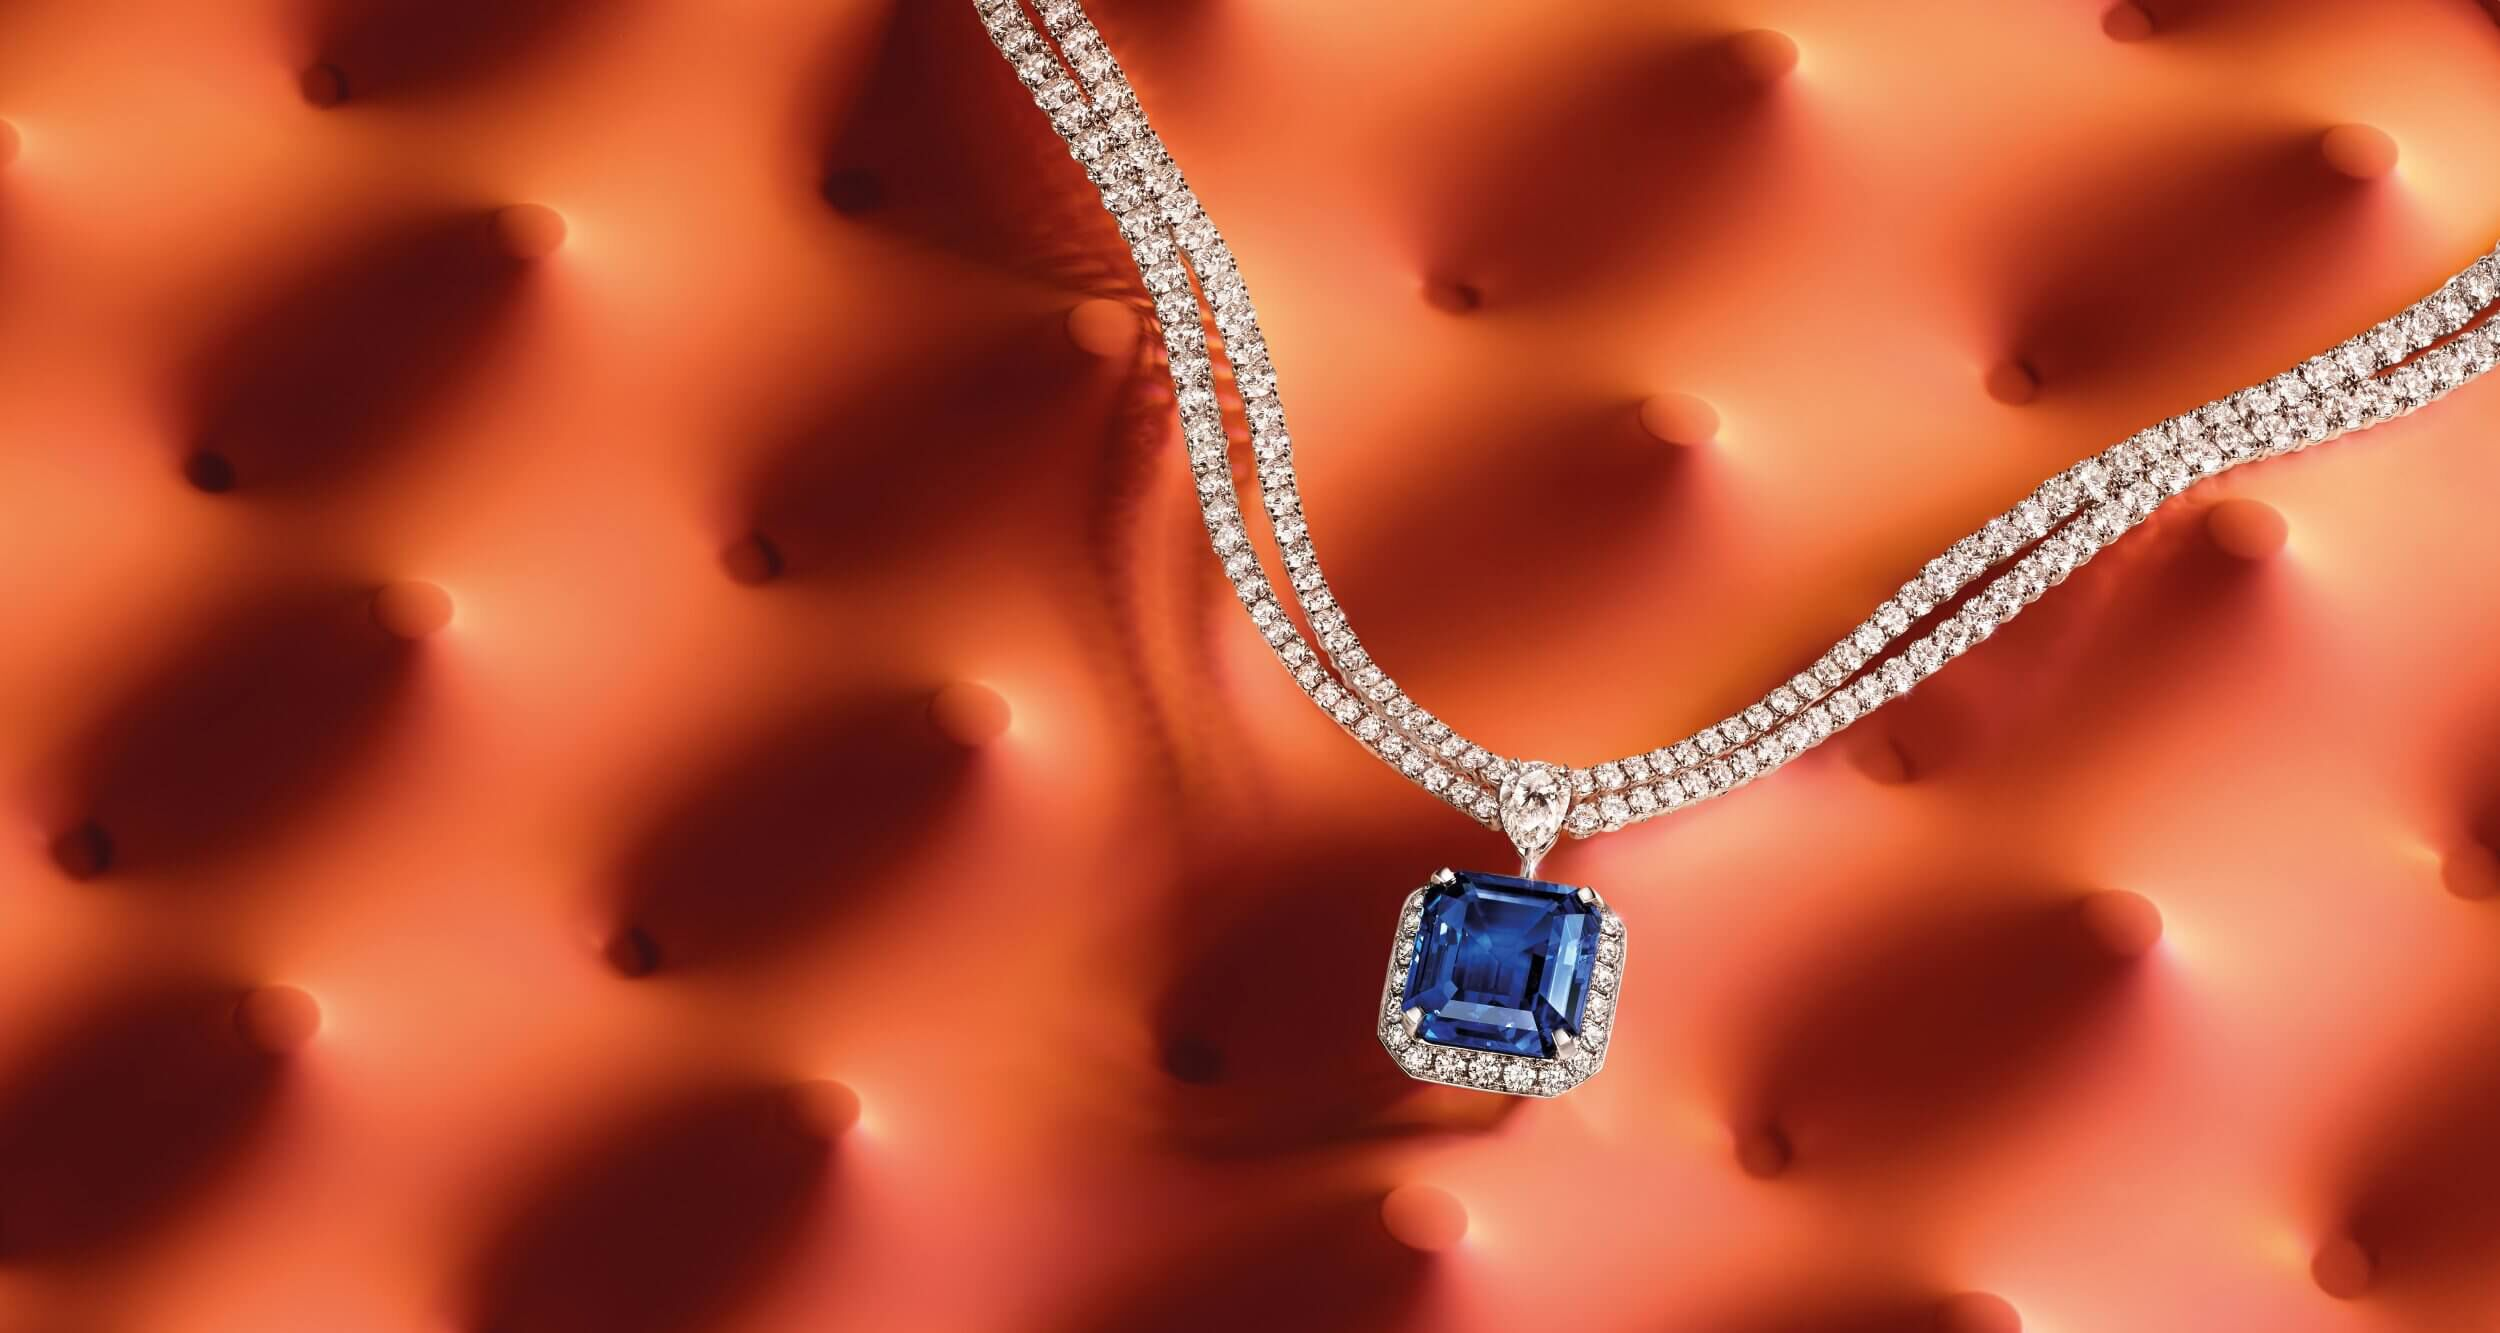 A 17 carat emerald cut sapphire and diamond necklace by Graff